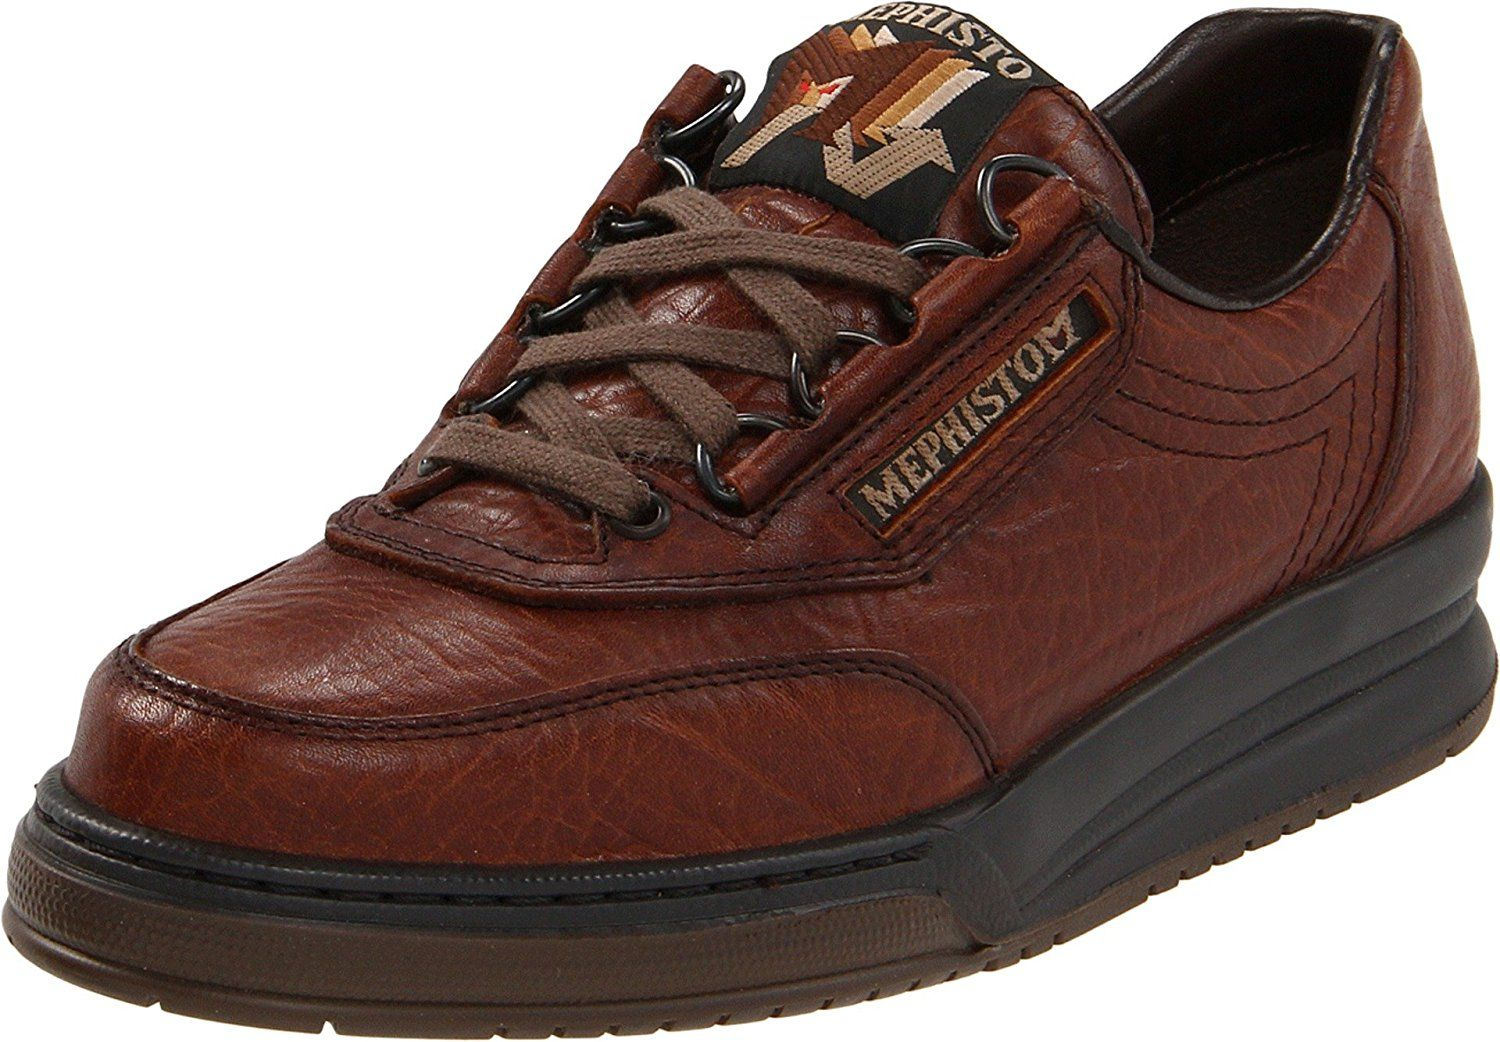 b4d4de41827b1 Mephisto Women's Rush Walking Shoe >>> Read more reviews of the ...